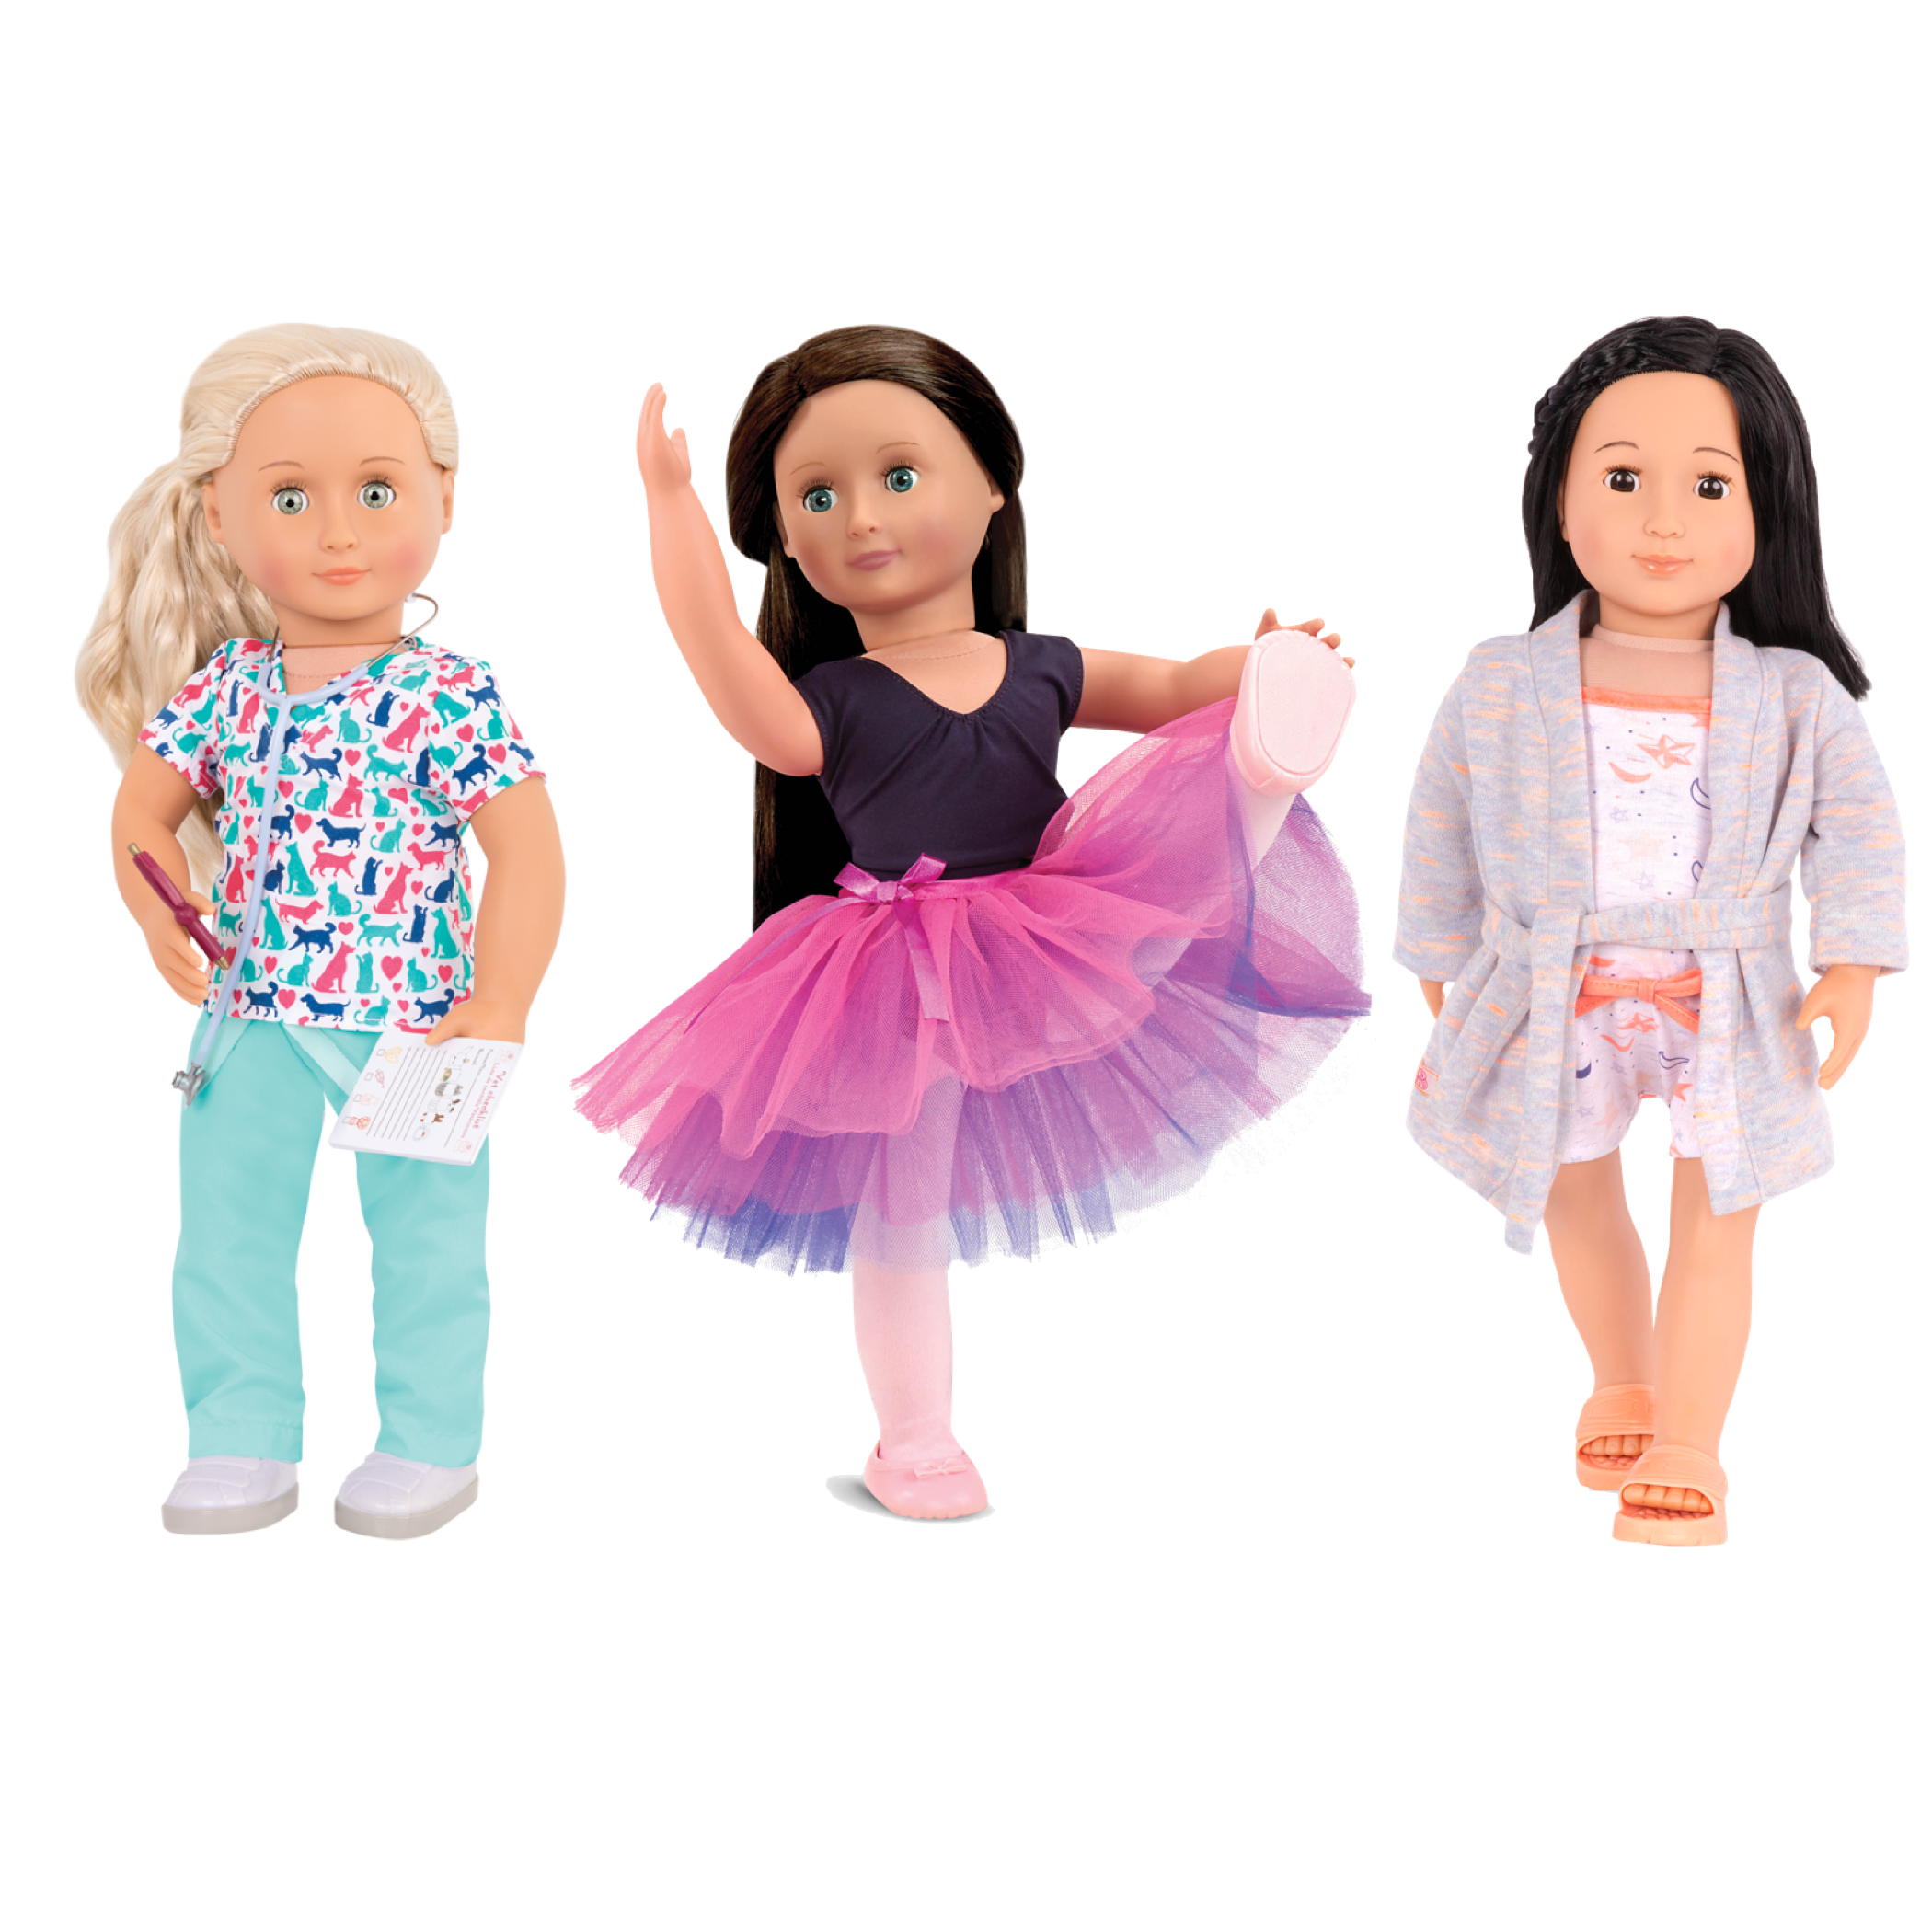 Work Dance Sleep Outfit Bundle pajama Naya Willow Suyin wearing